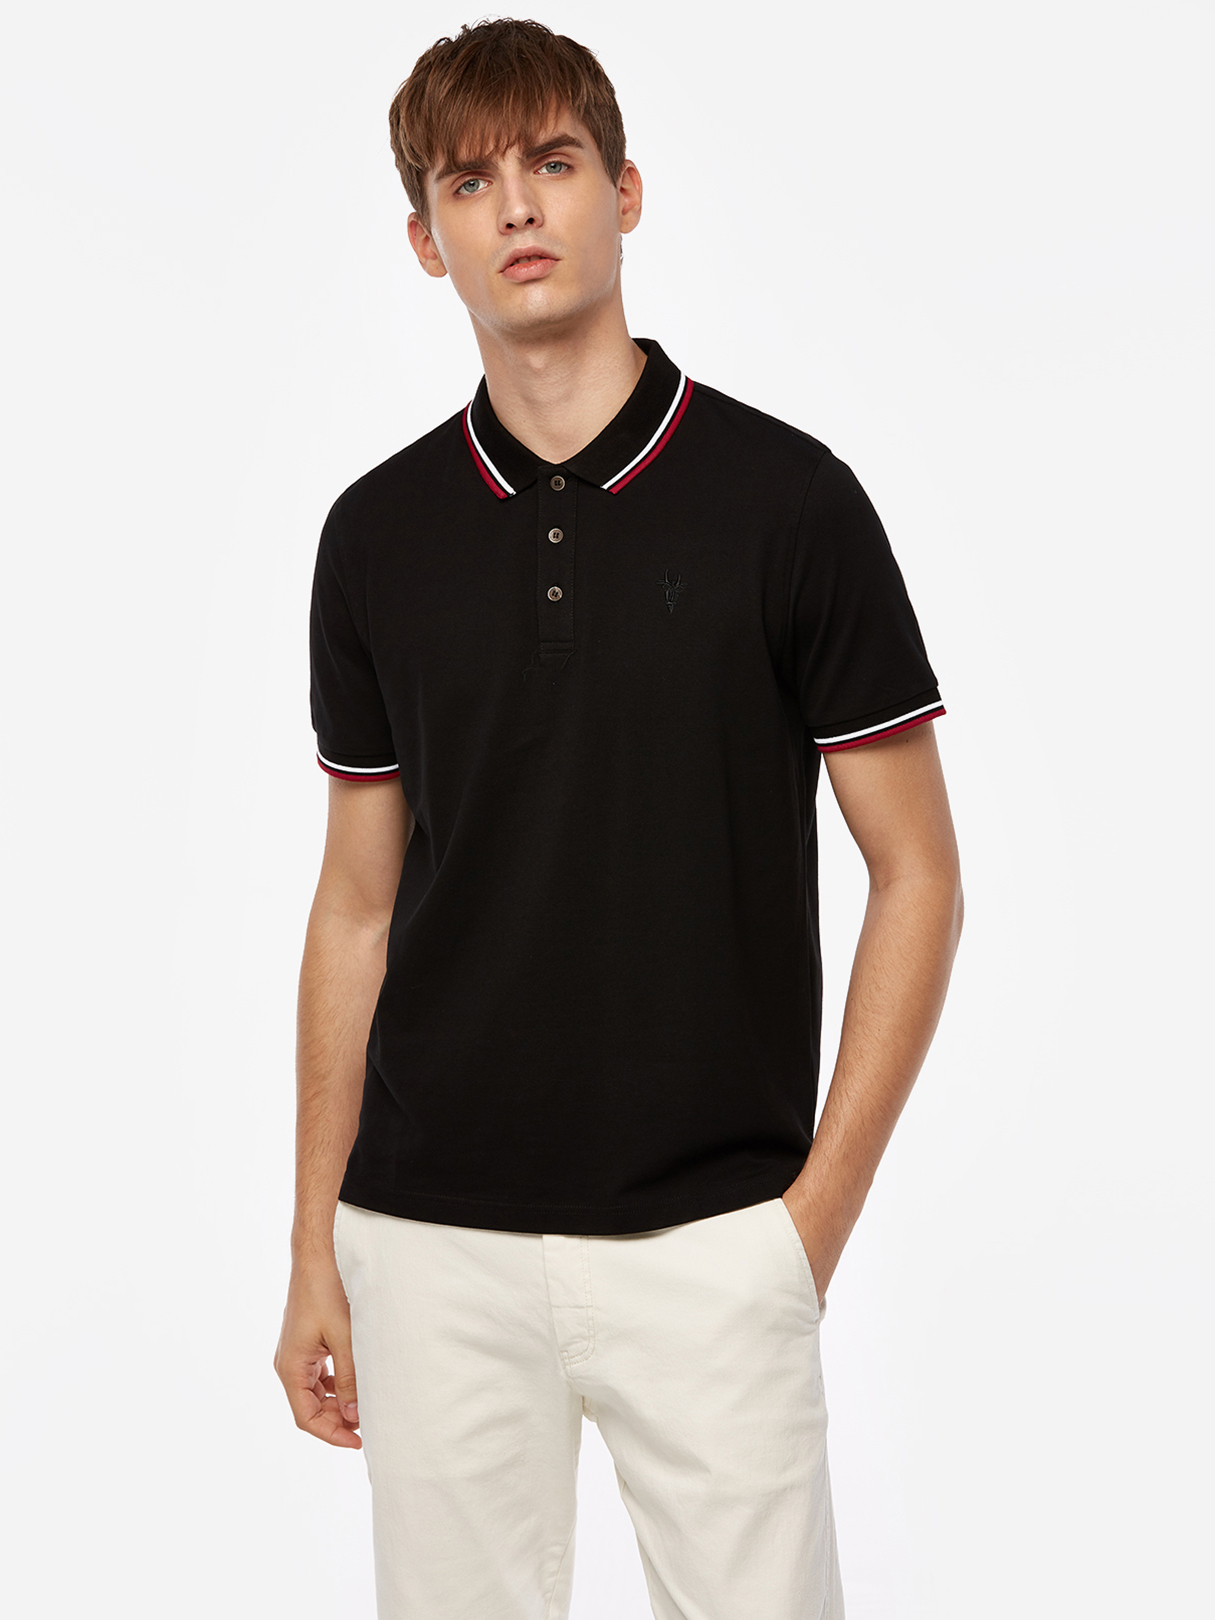 Black Pure Color Stripes Three Buttons Short Sleeve Men's Polo Shirt dark blue color blocking three buttons short sleeve men s polo shirt